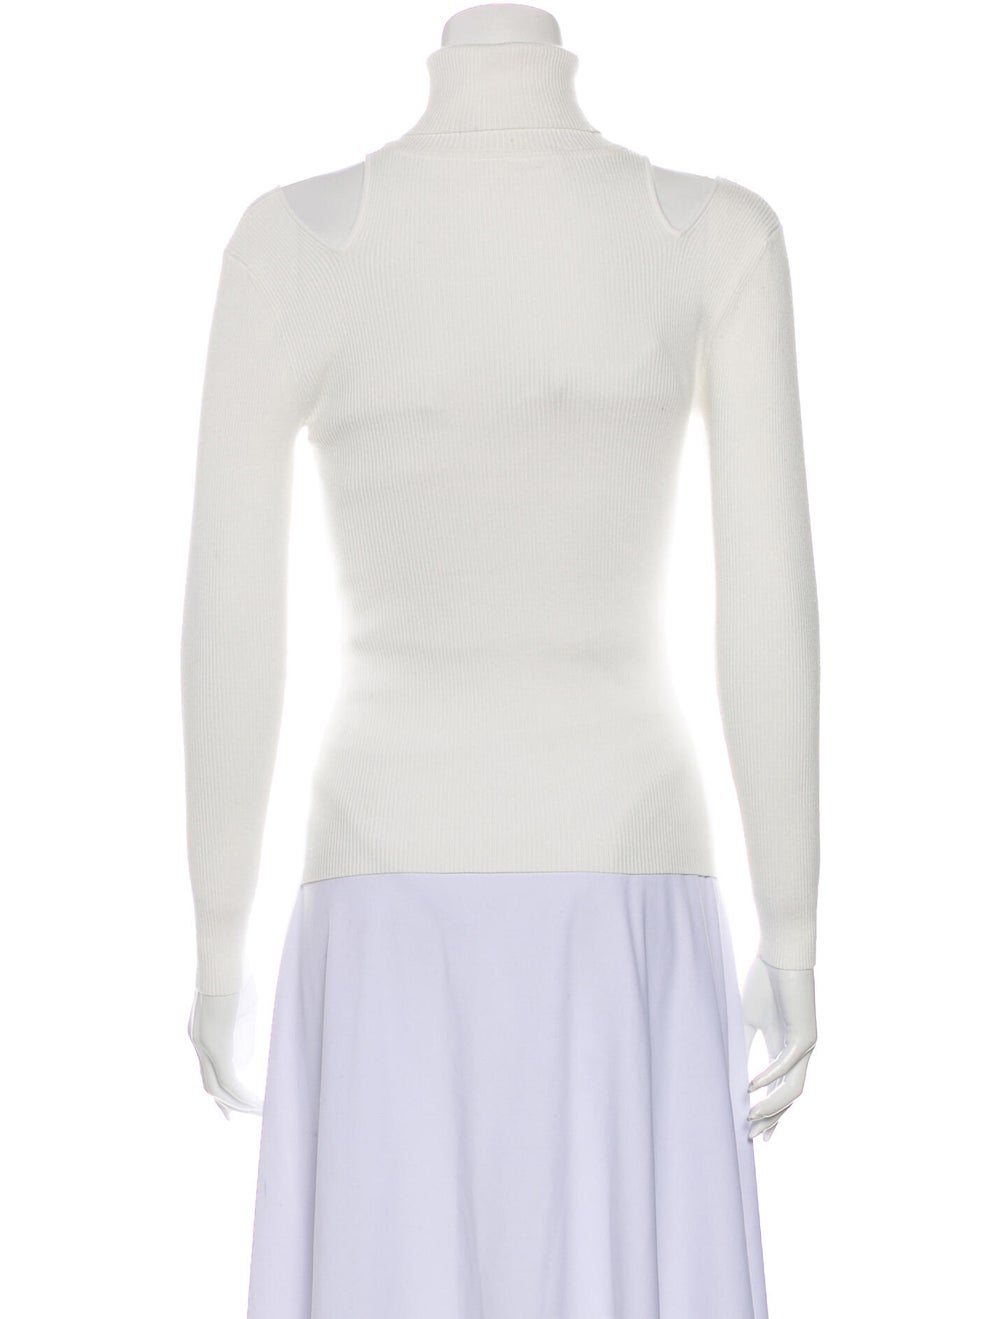 A.l.c. Turtleneck Long Sleeve Top White - image 3